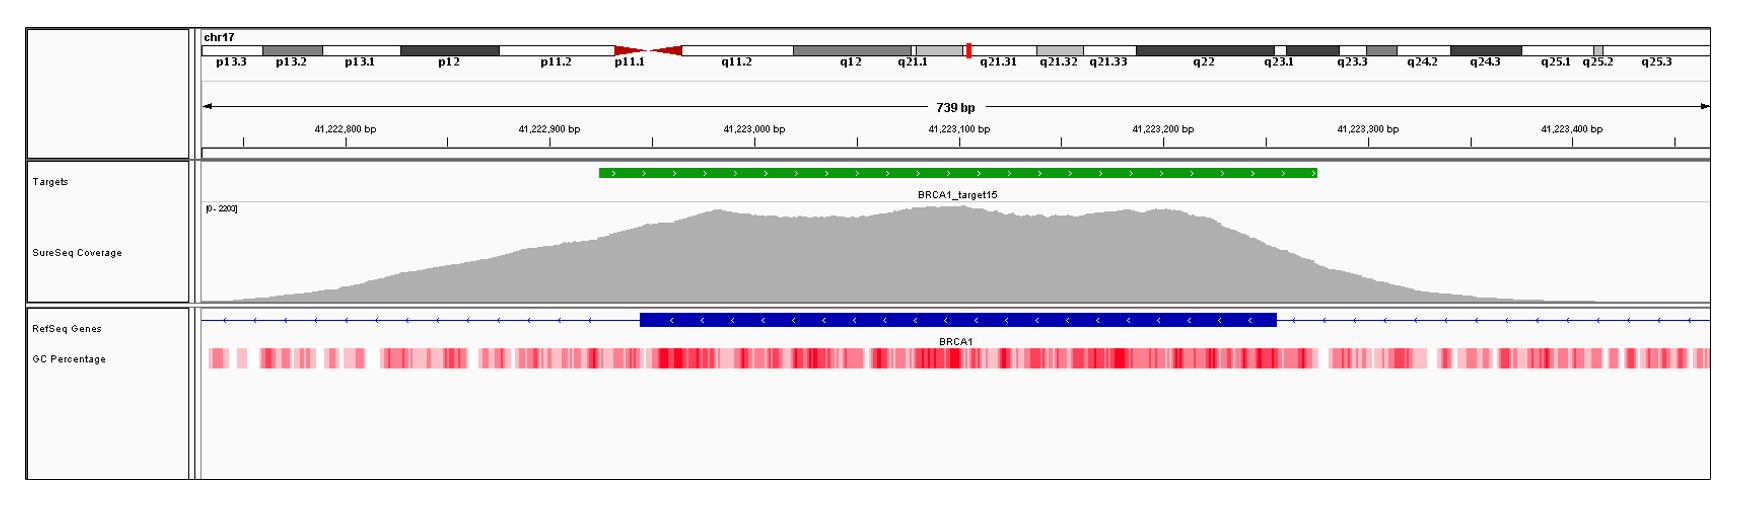 BRCA1 Exon 15 (hg19 chr17:41222945-41223255). Depth of coverage per base (grey). Targeted region (green). Gene coding region as defined by RefSeq (blue). GC percentage (red). Image